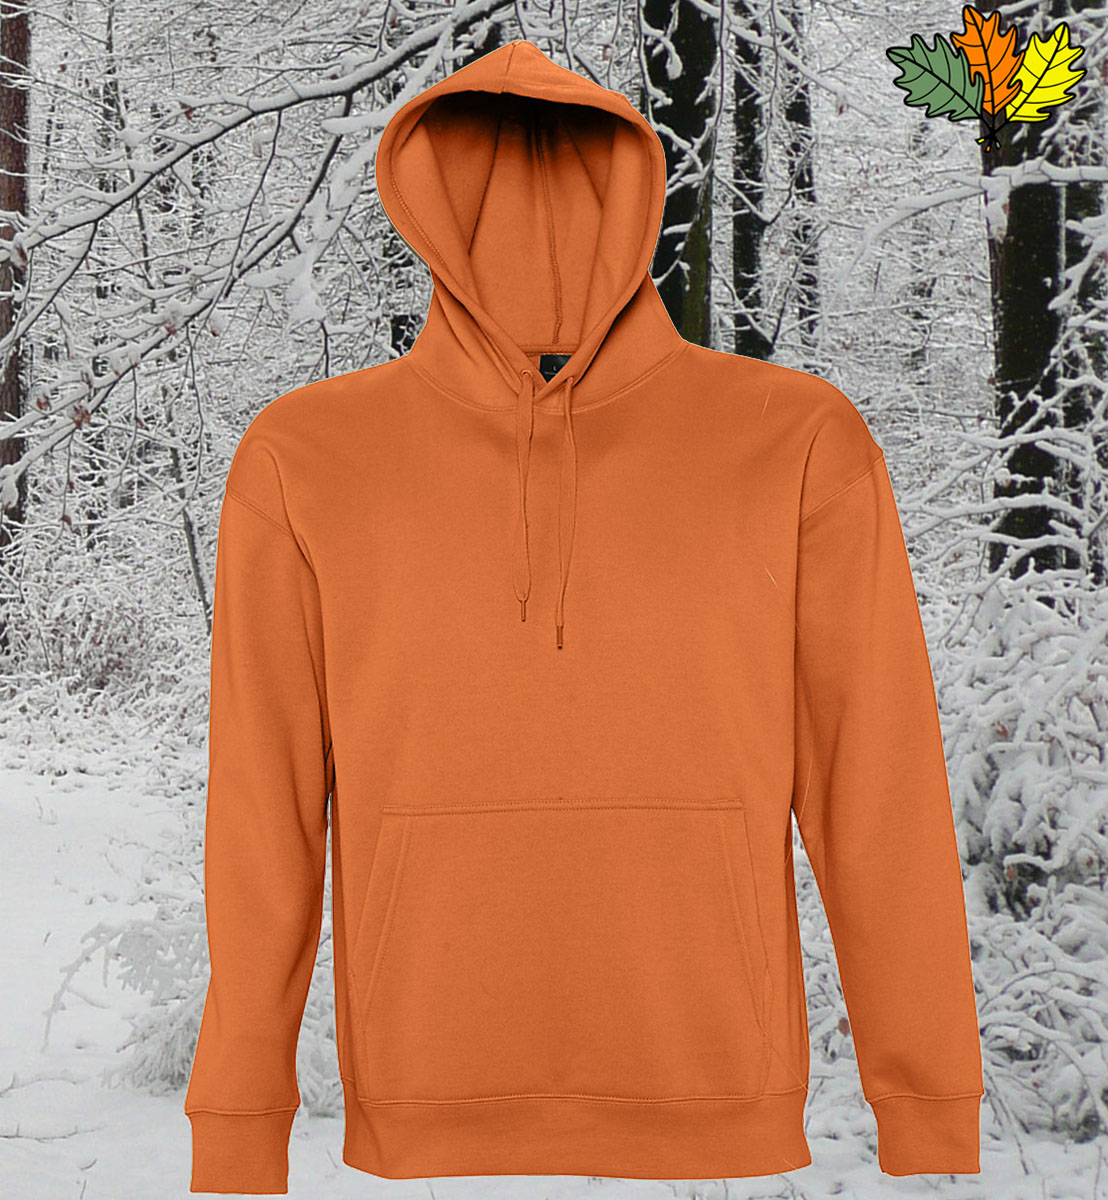 Sweat shirt à capuche de chasse